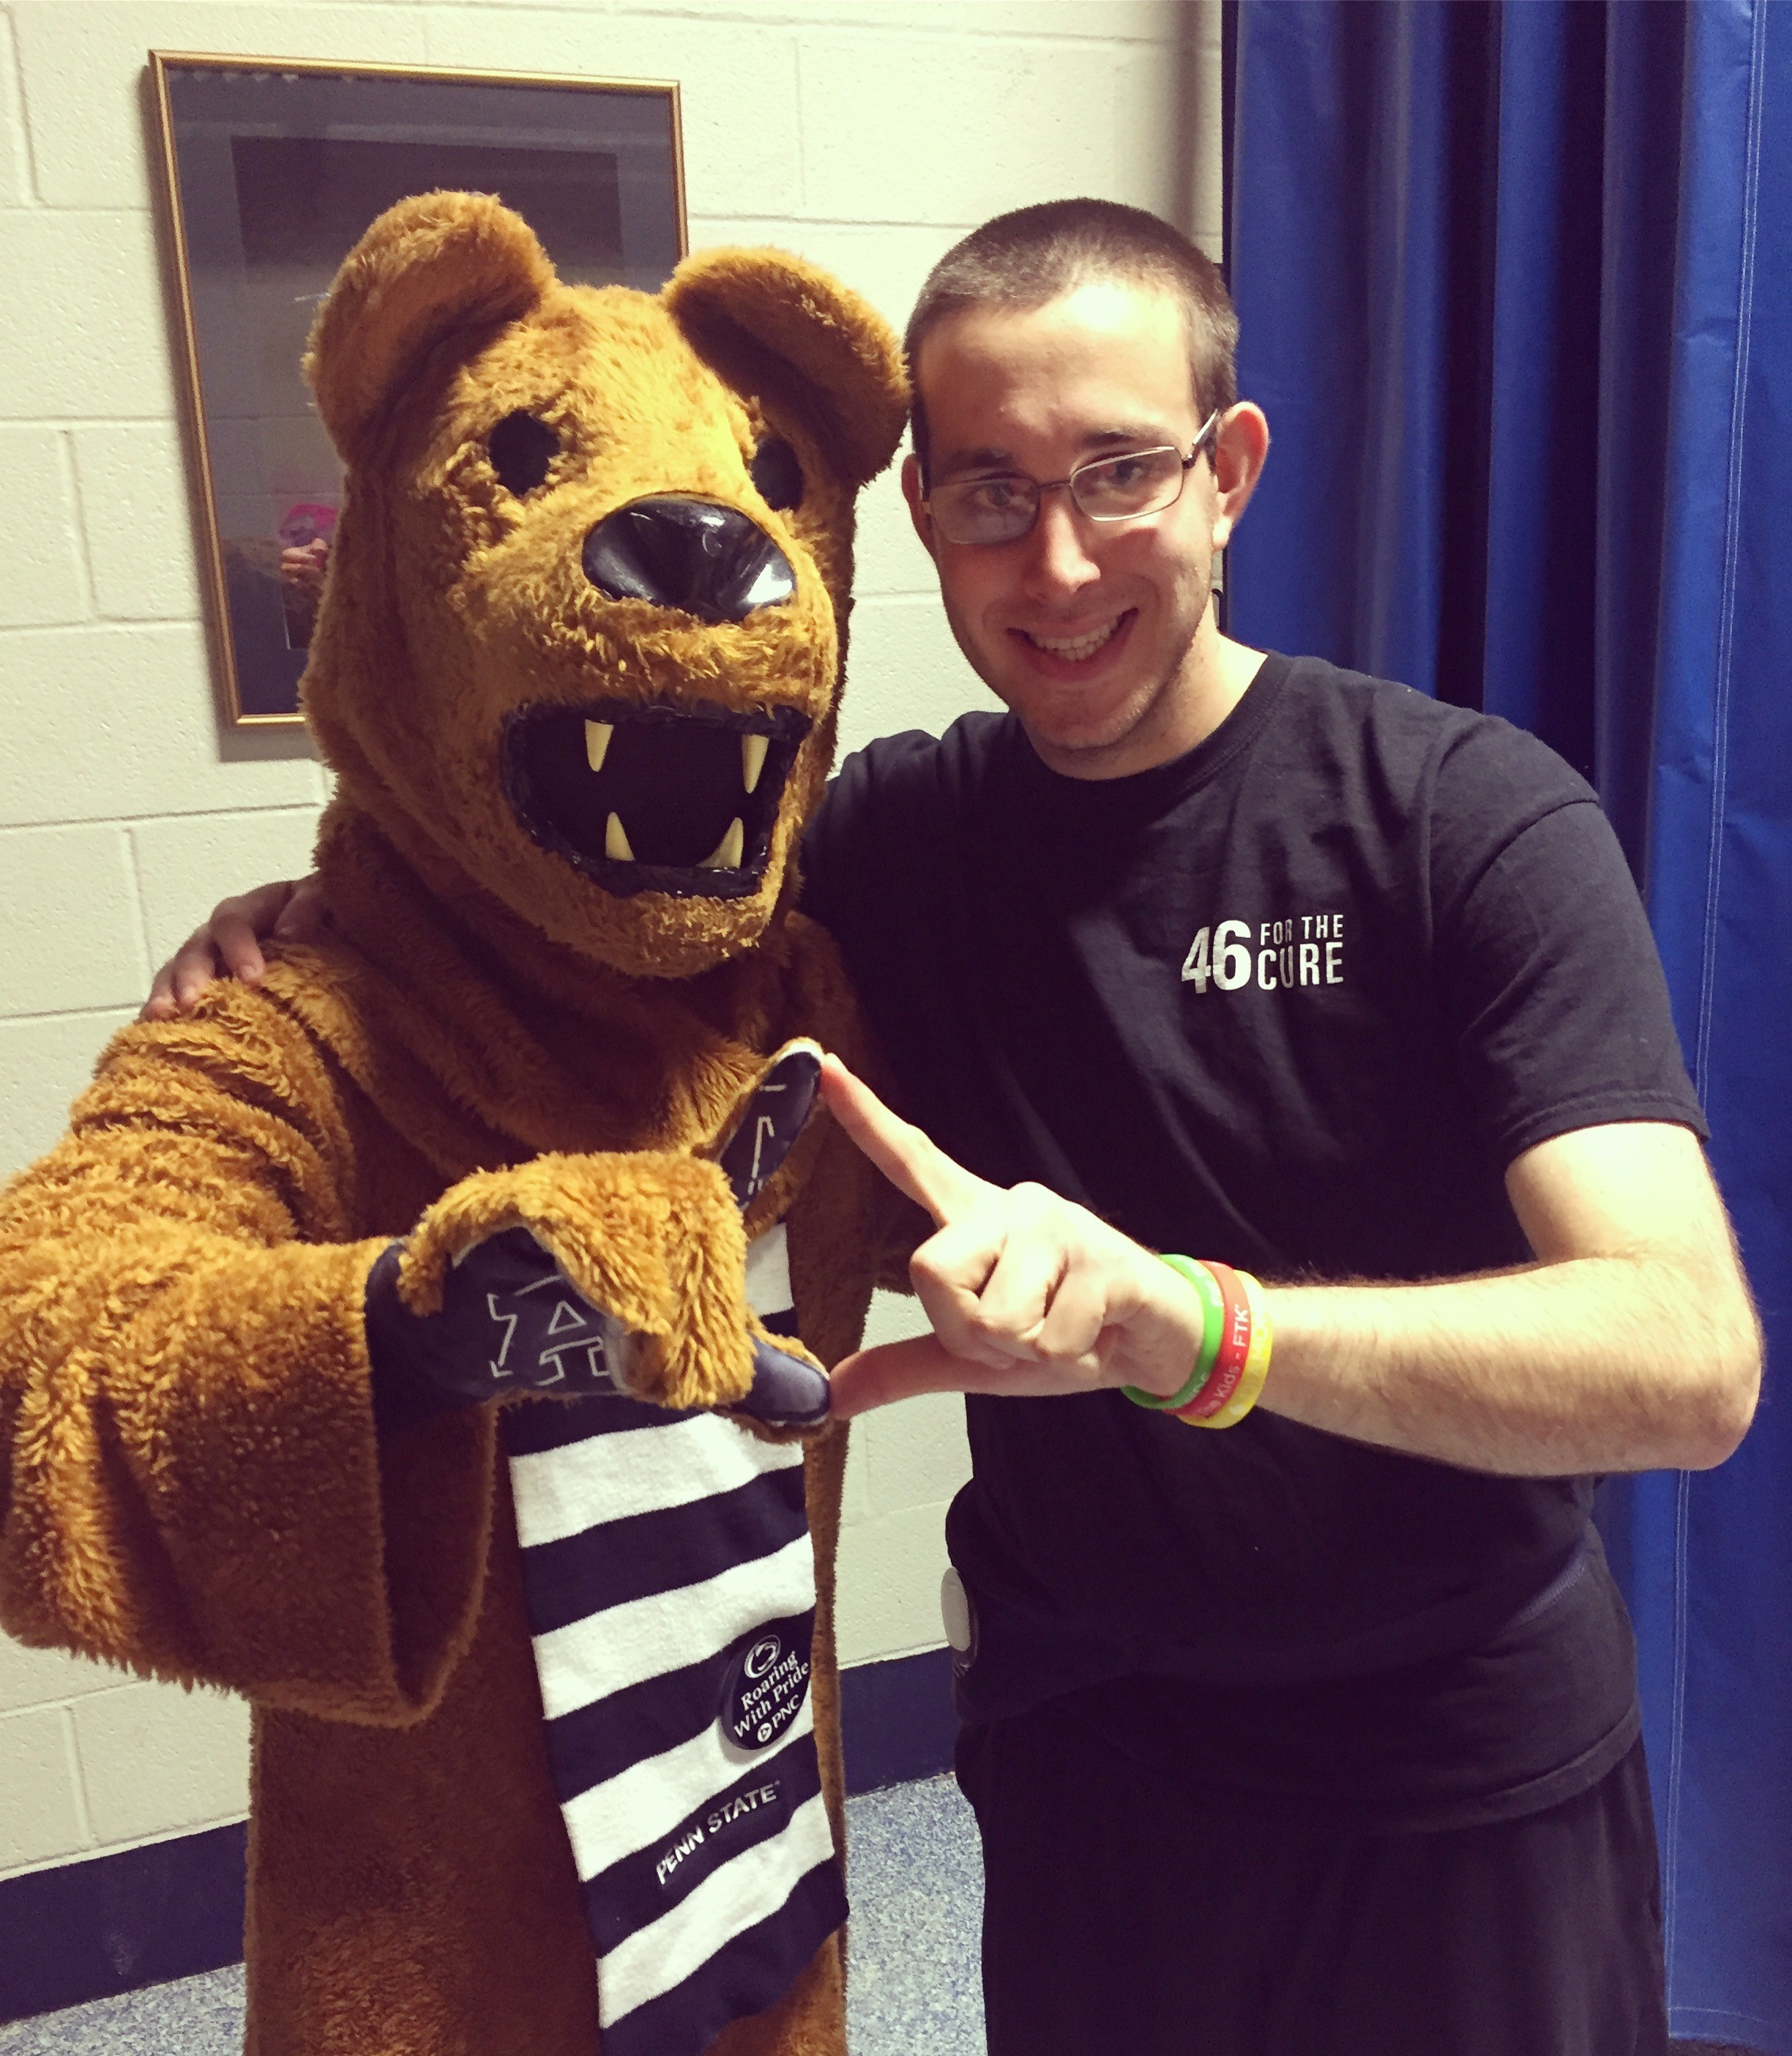 ACTIVITIES DIRECTOR – Adam Jarvis - Adam was raised in Blue Bell, PA, and currently resides in Philadelphia. He attended the University Park campus and graduated in 2017 with a degree in Health Policy & Administration, with a minor in health information systems. While at Penn State, he was heavily involved in the Blue & White Society, the student chapter of the alumni association, and also danced in THON his junior year.After college, Adam started working for Cigna in Center City, as an IT Project Manager. He also has taken on several recruiting and philanthropy roles through Cigna as well, where he works with colleagues to better the Information Technology rotational program. Adam also was part of the inaugural class of Young Alumni Ambassadors for the alumni association, helping engage recent grads in the local Philadelphia area.In Philly, Adam enjoys exploring the city, trying new restaurants, playing intramural sports, and watching both Penn State and Eagles Football.Contact Adam at Activities@pennstatephilly.org if you would like to get involved in any/all events and activities.